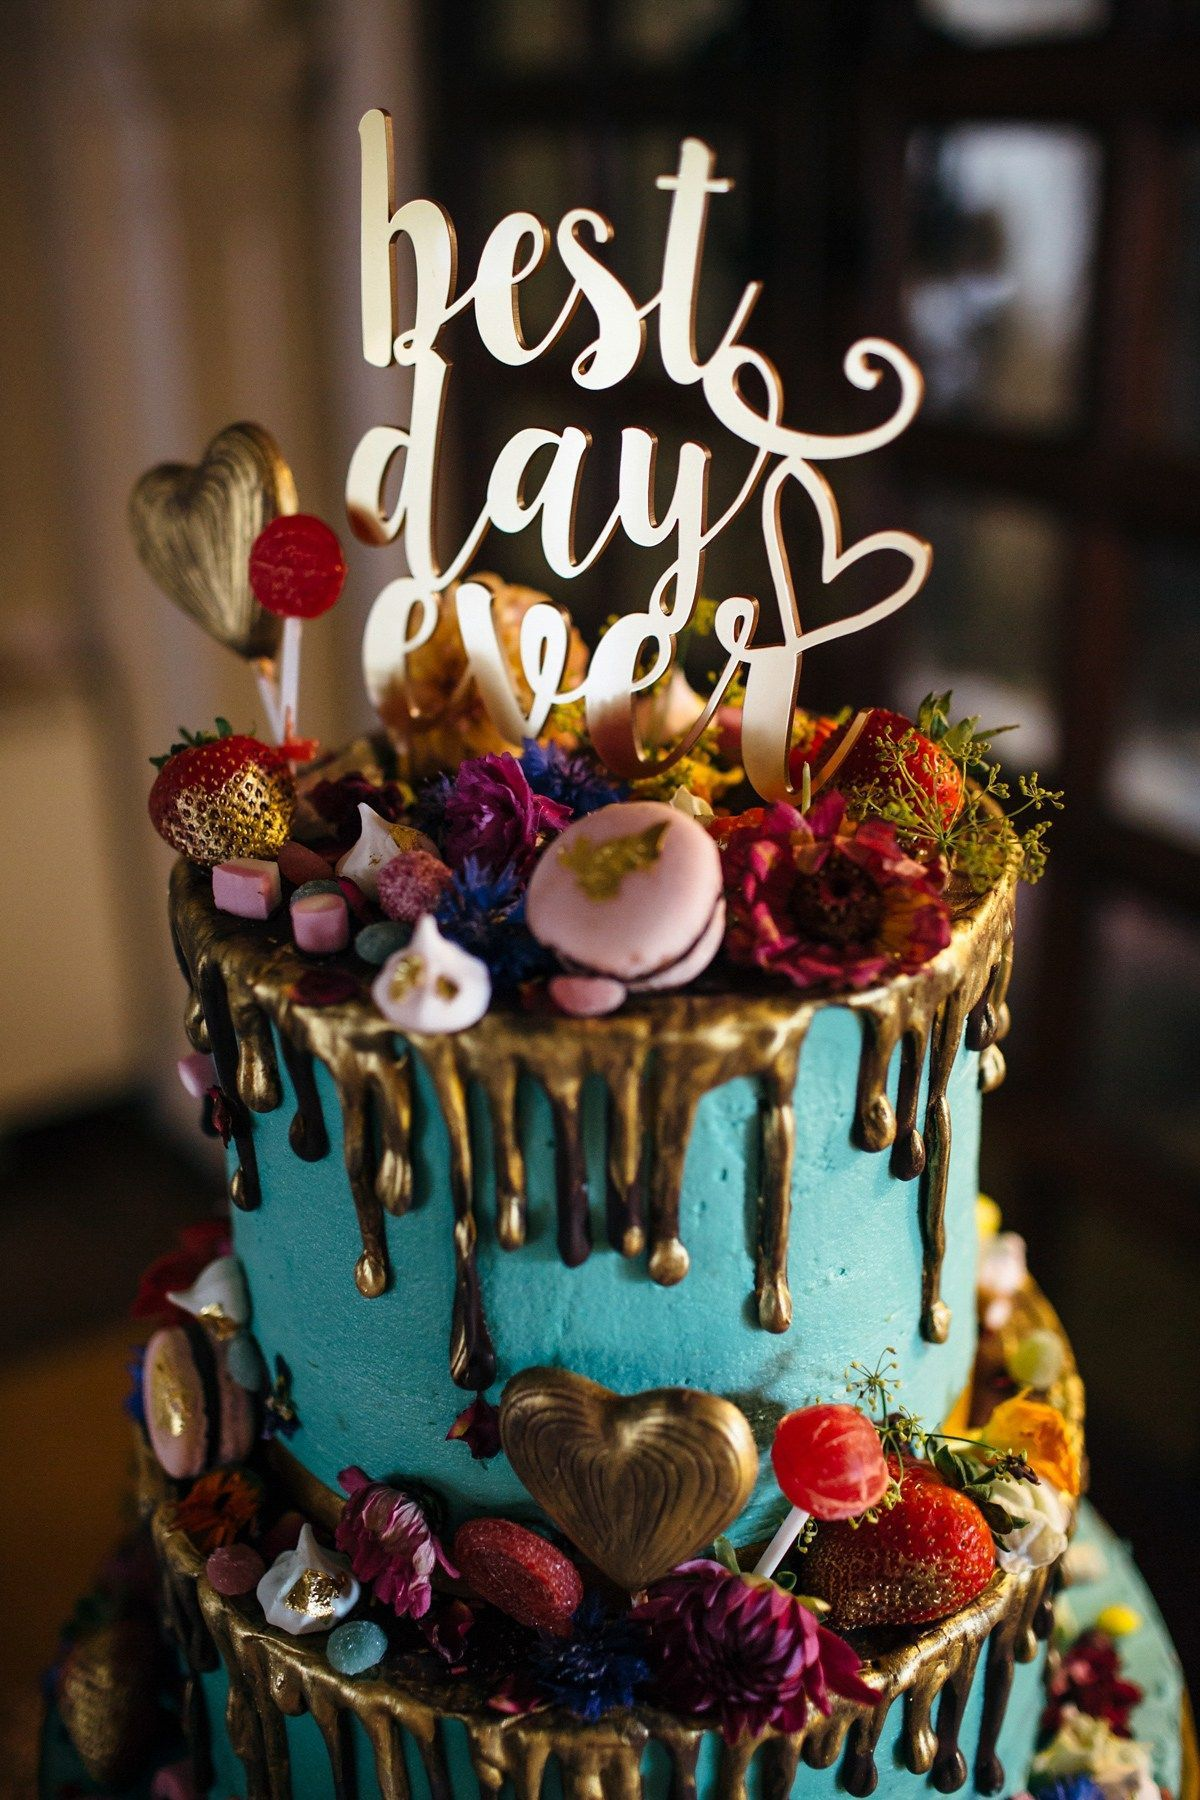 Blue And Gold Wedding Cake Decorated With Fresh Flowers Fruits And